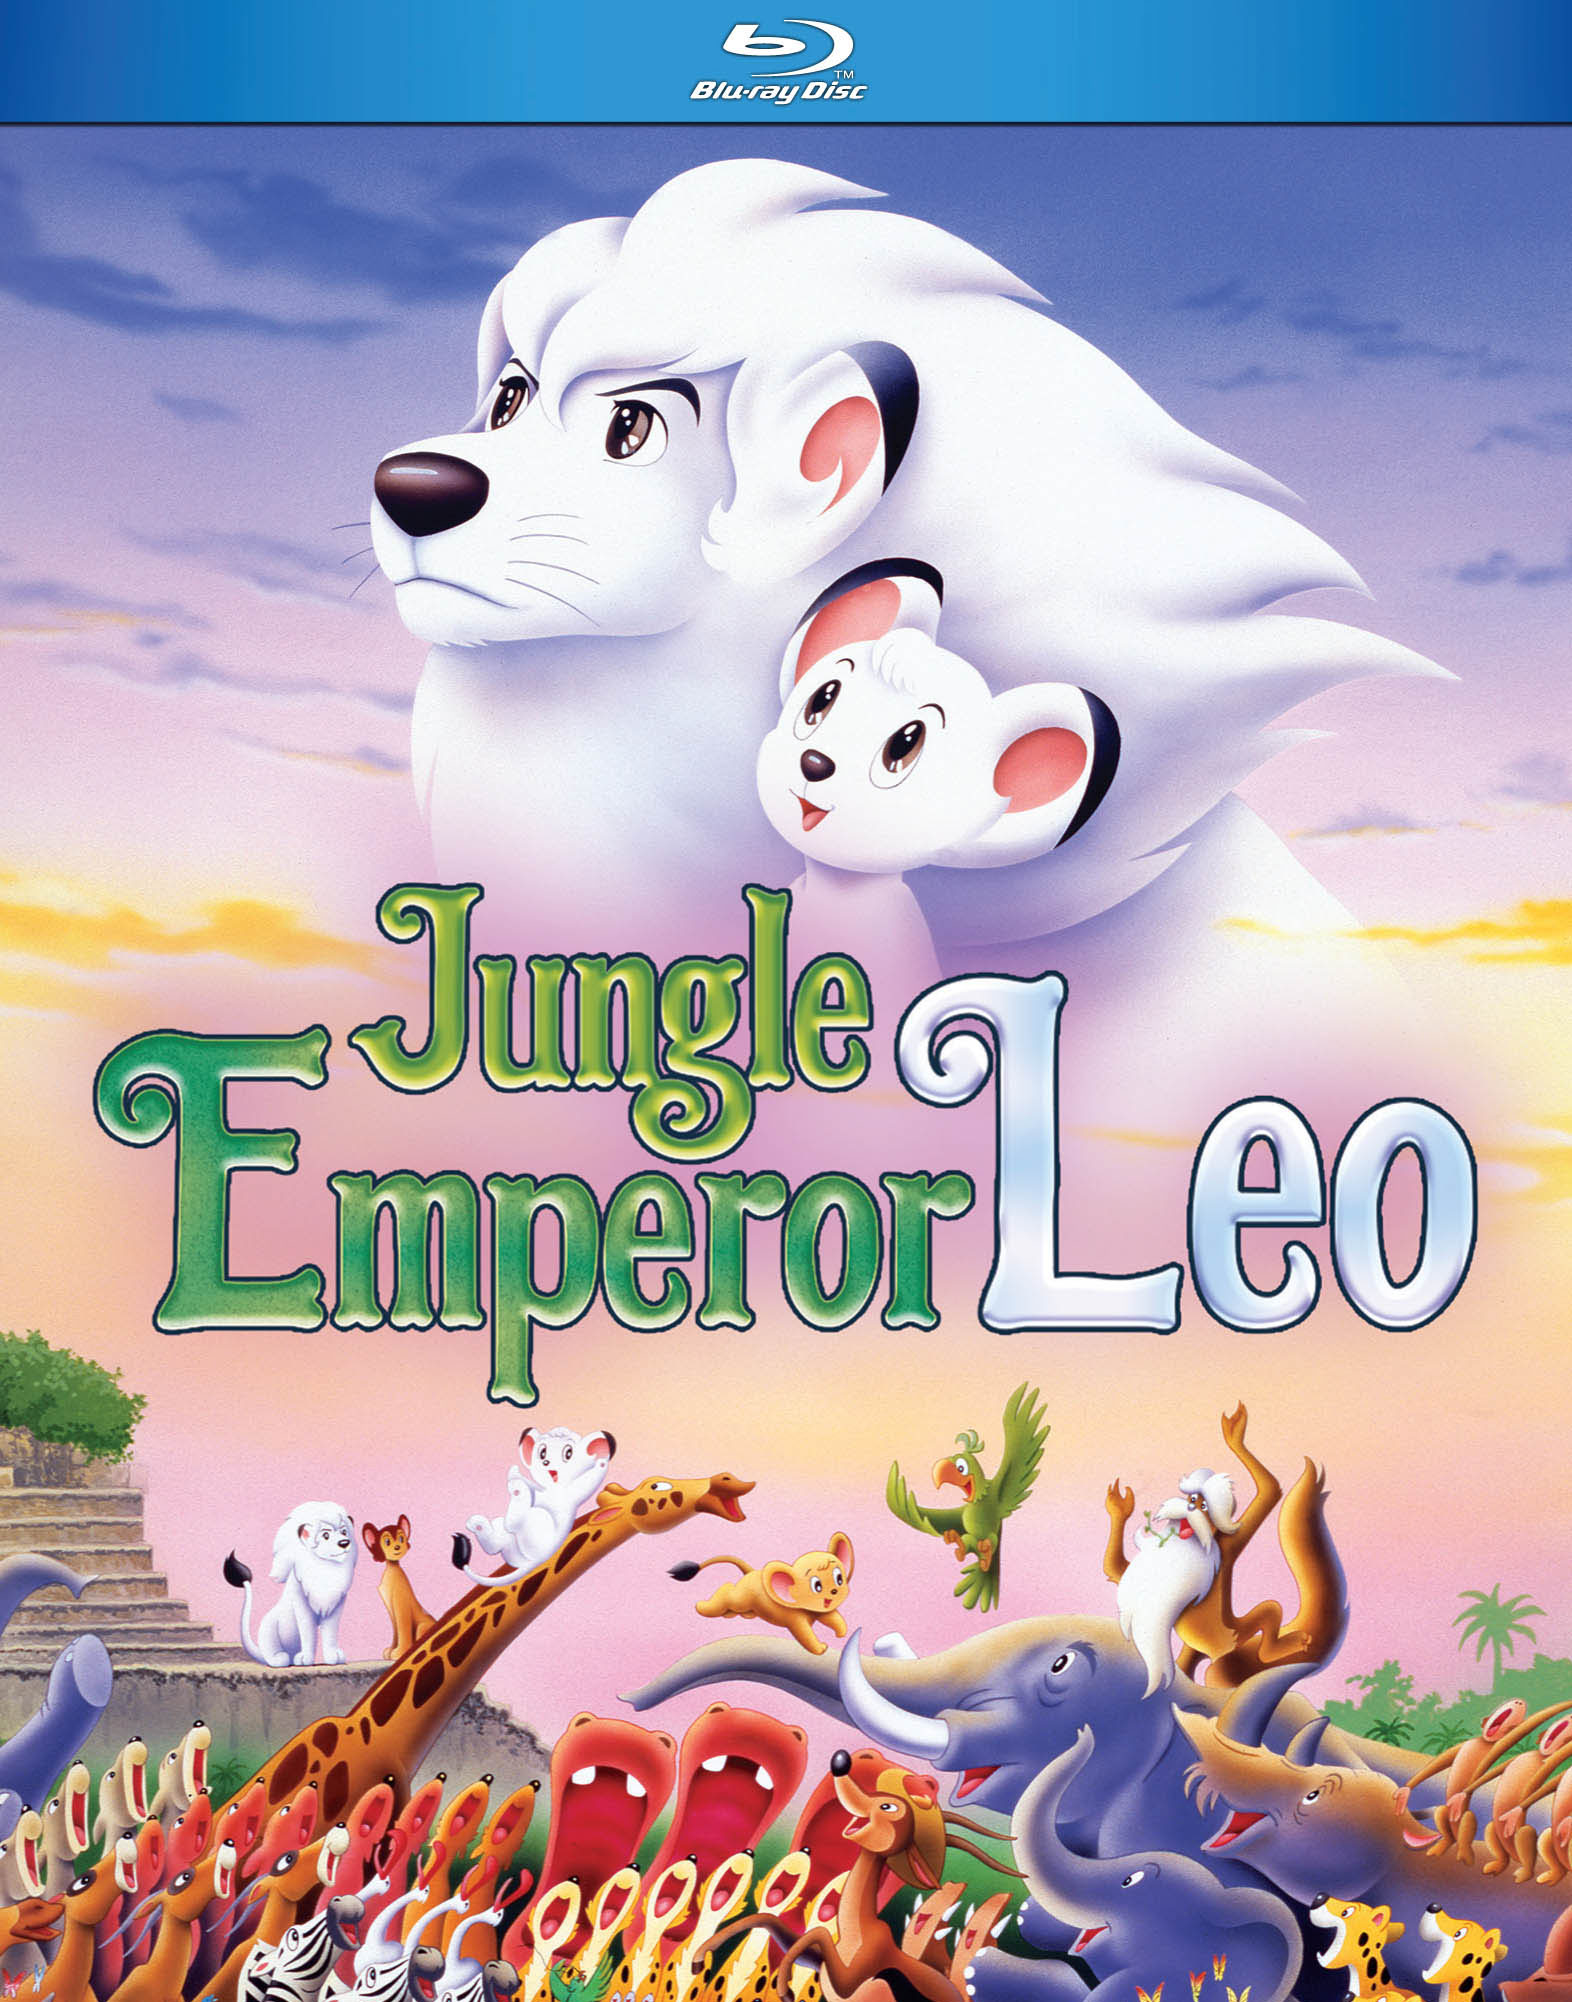 Jungle Emperor Leo Blu-ray 875707123099